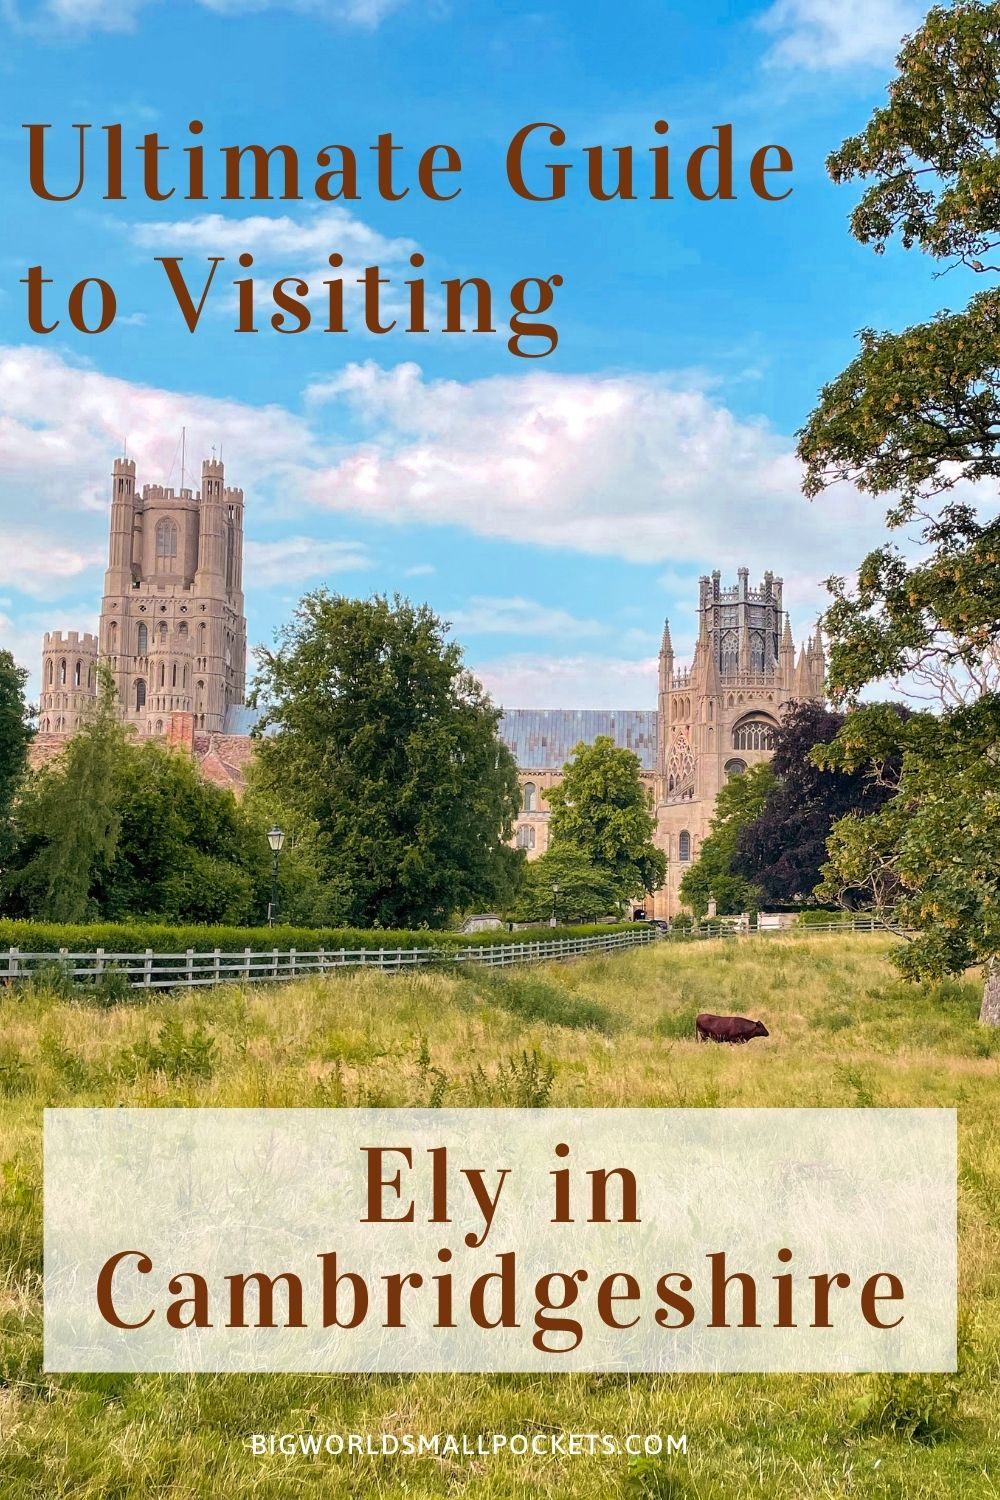 Ultimate Guide to Visiting Ely, Cambridgeshire, England